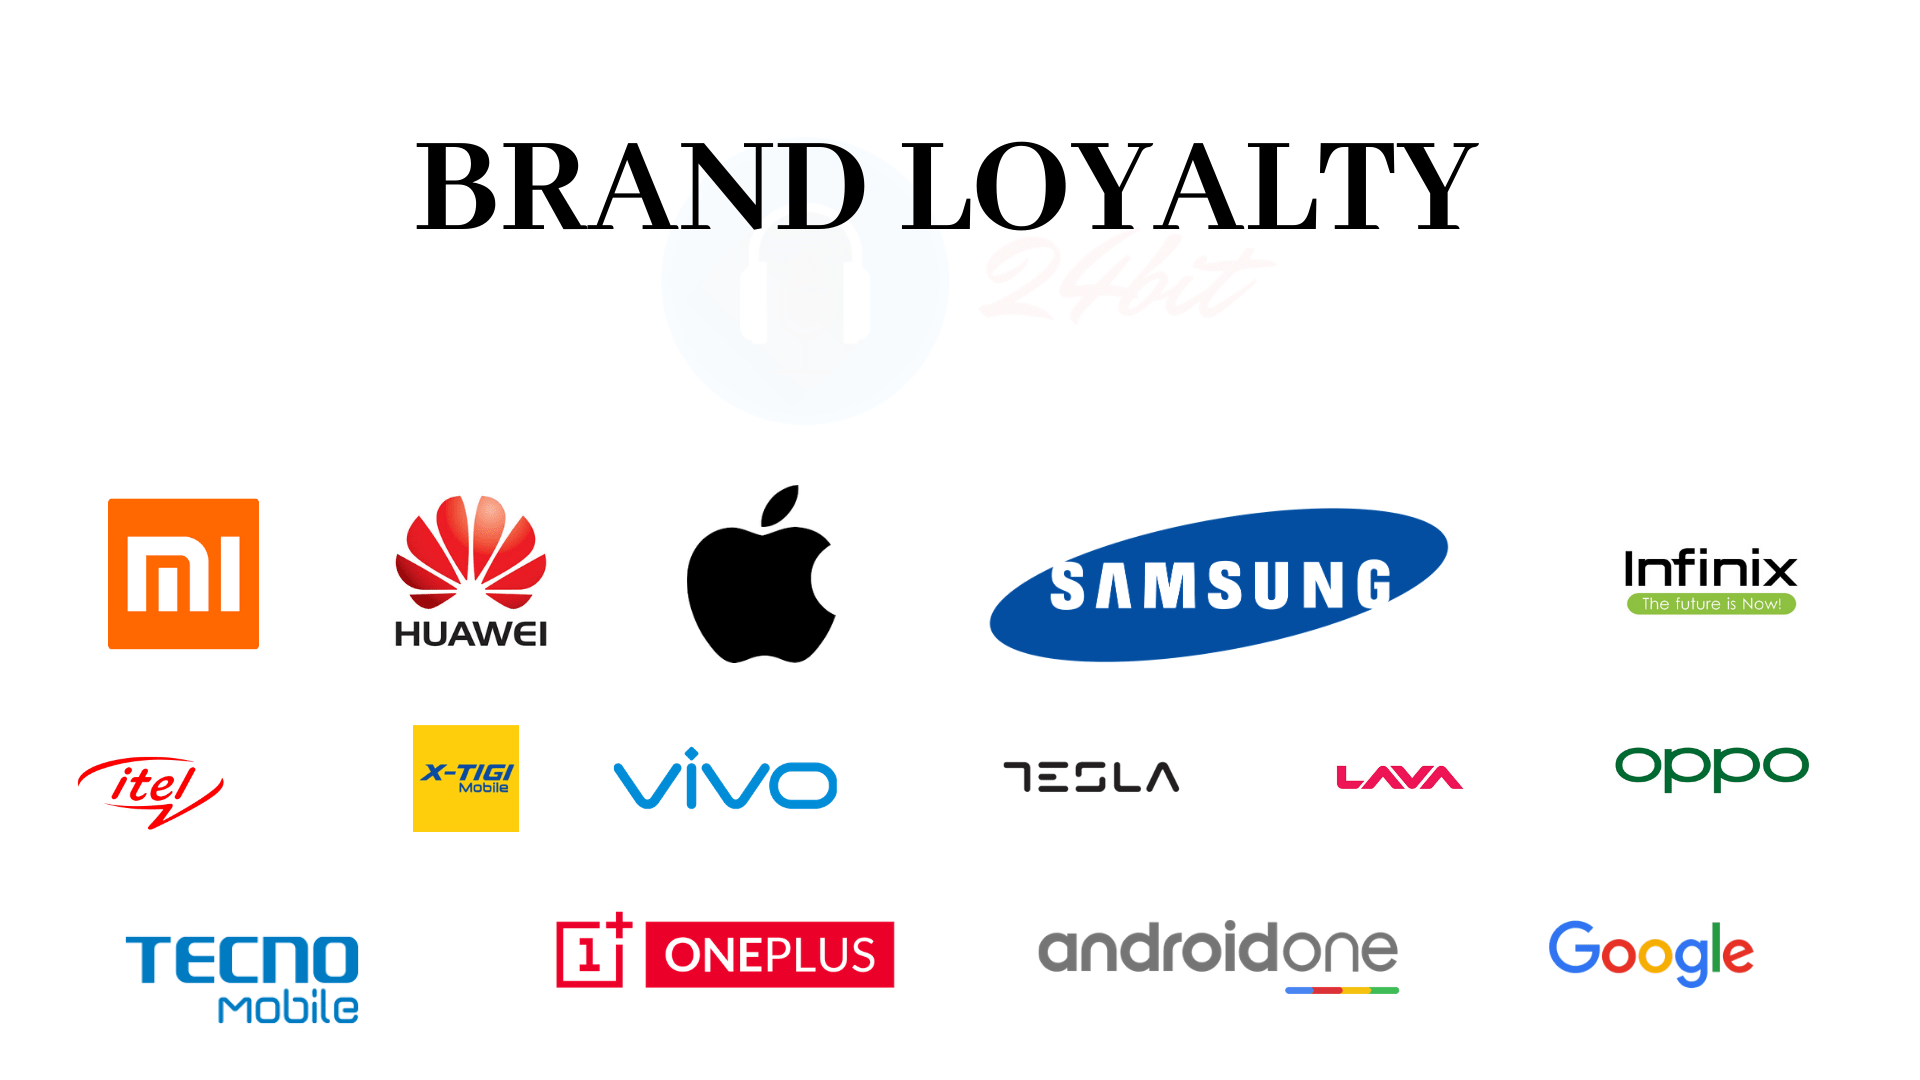 24Bit: Why are we very loyal to certain brands?